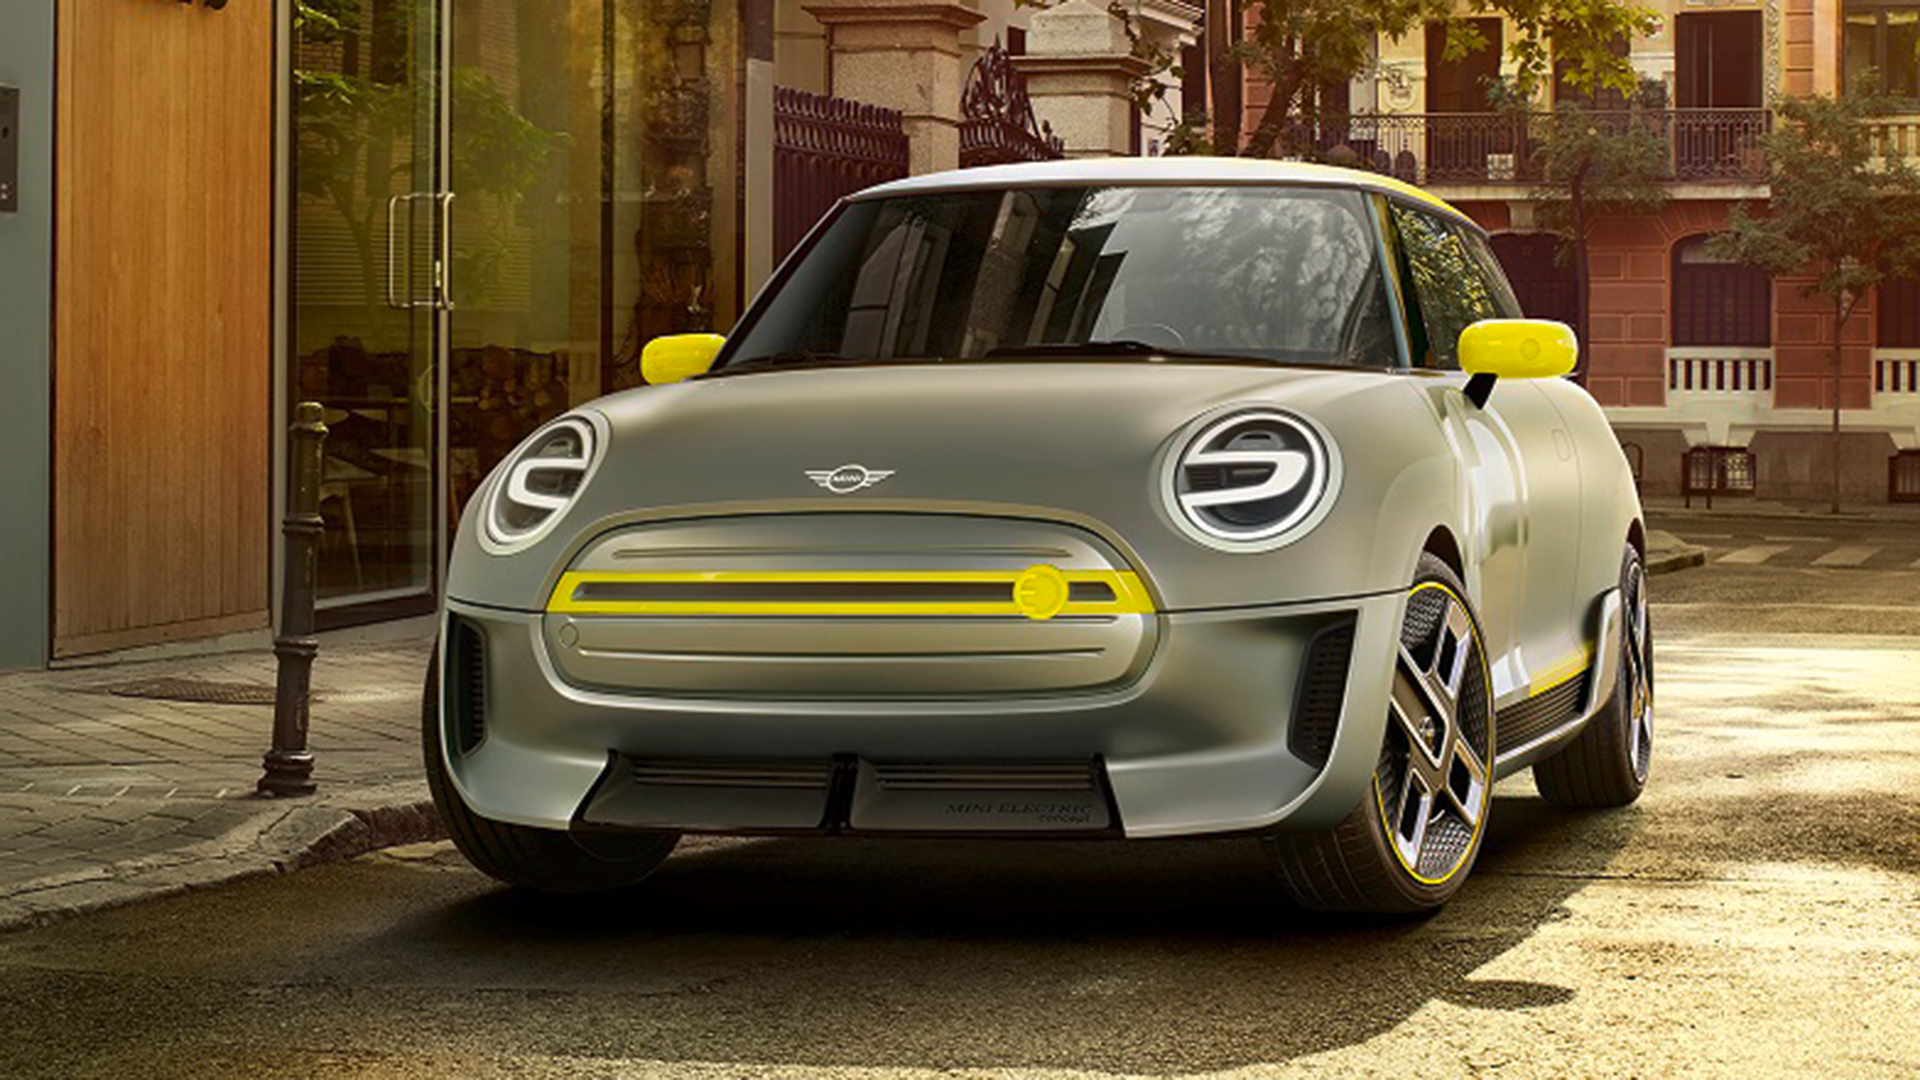 BMW unveils new Mini design for electric powered auto